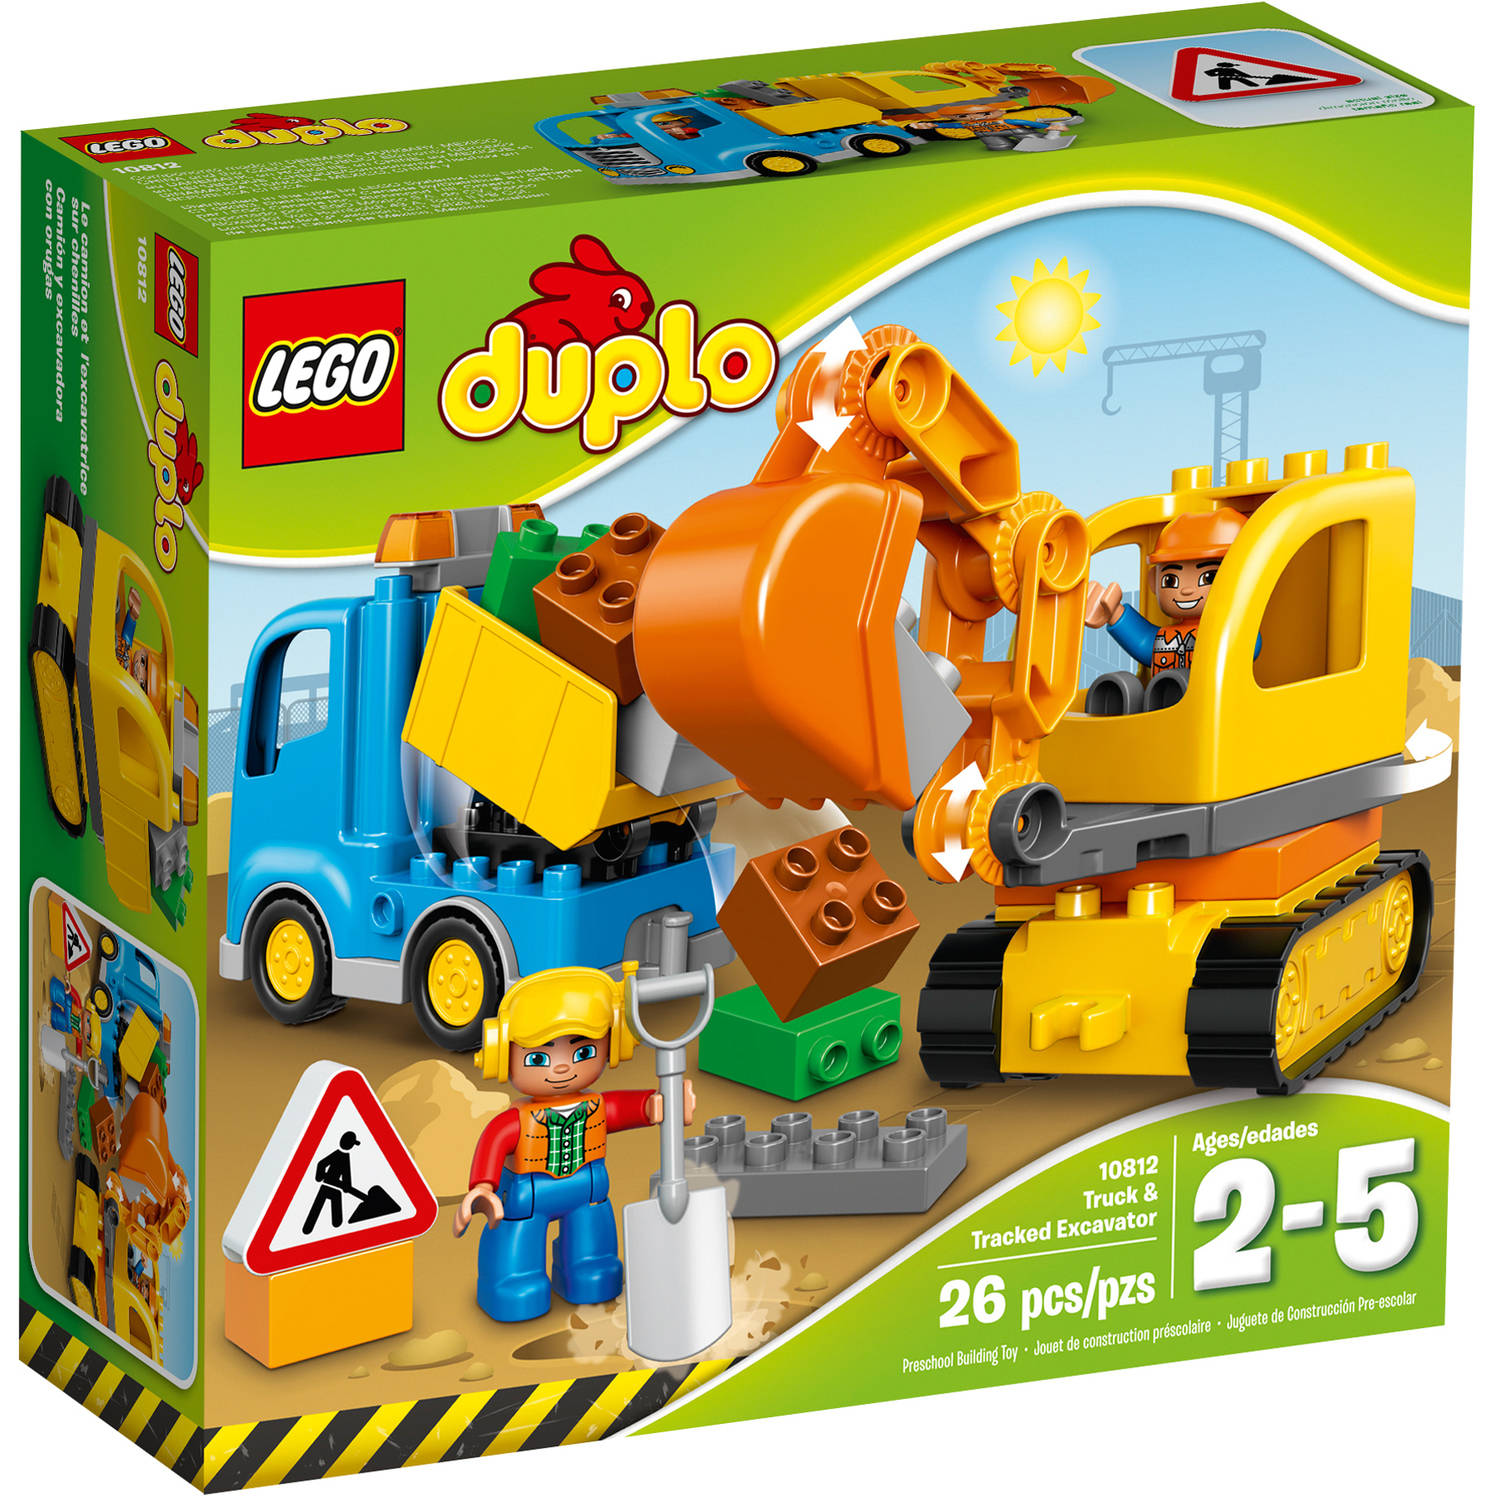 LEGO DUPLO Town Truck & Tracked Excavator Building Set, 10812